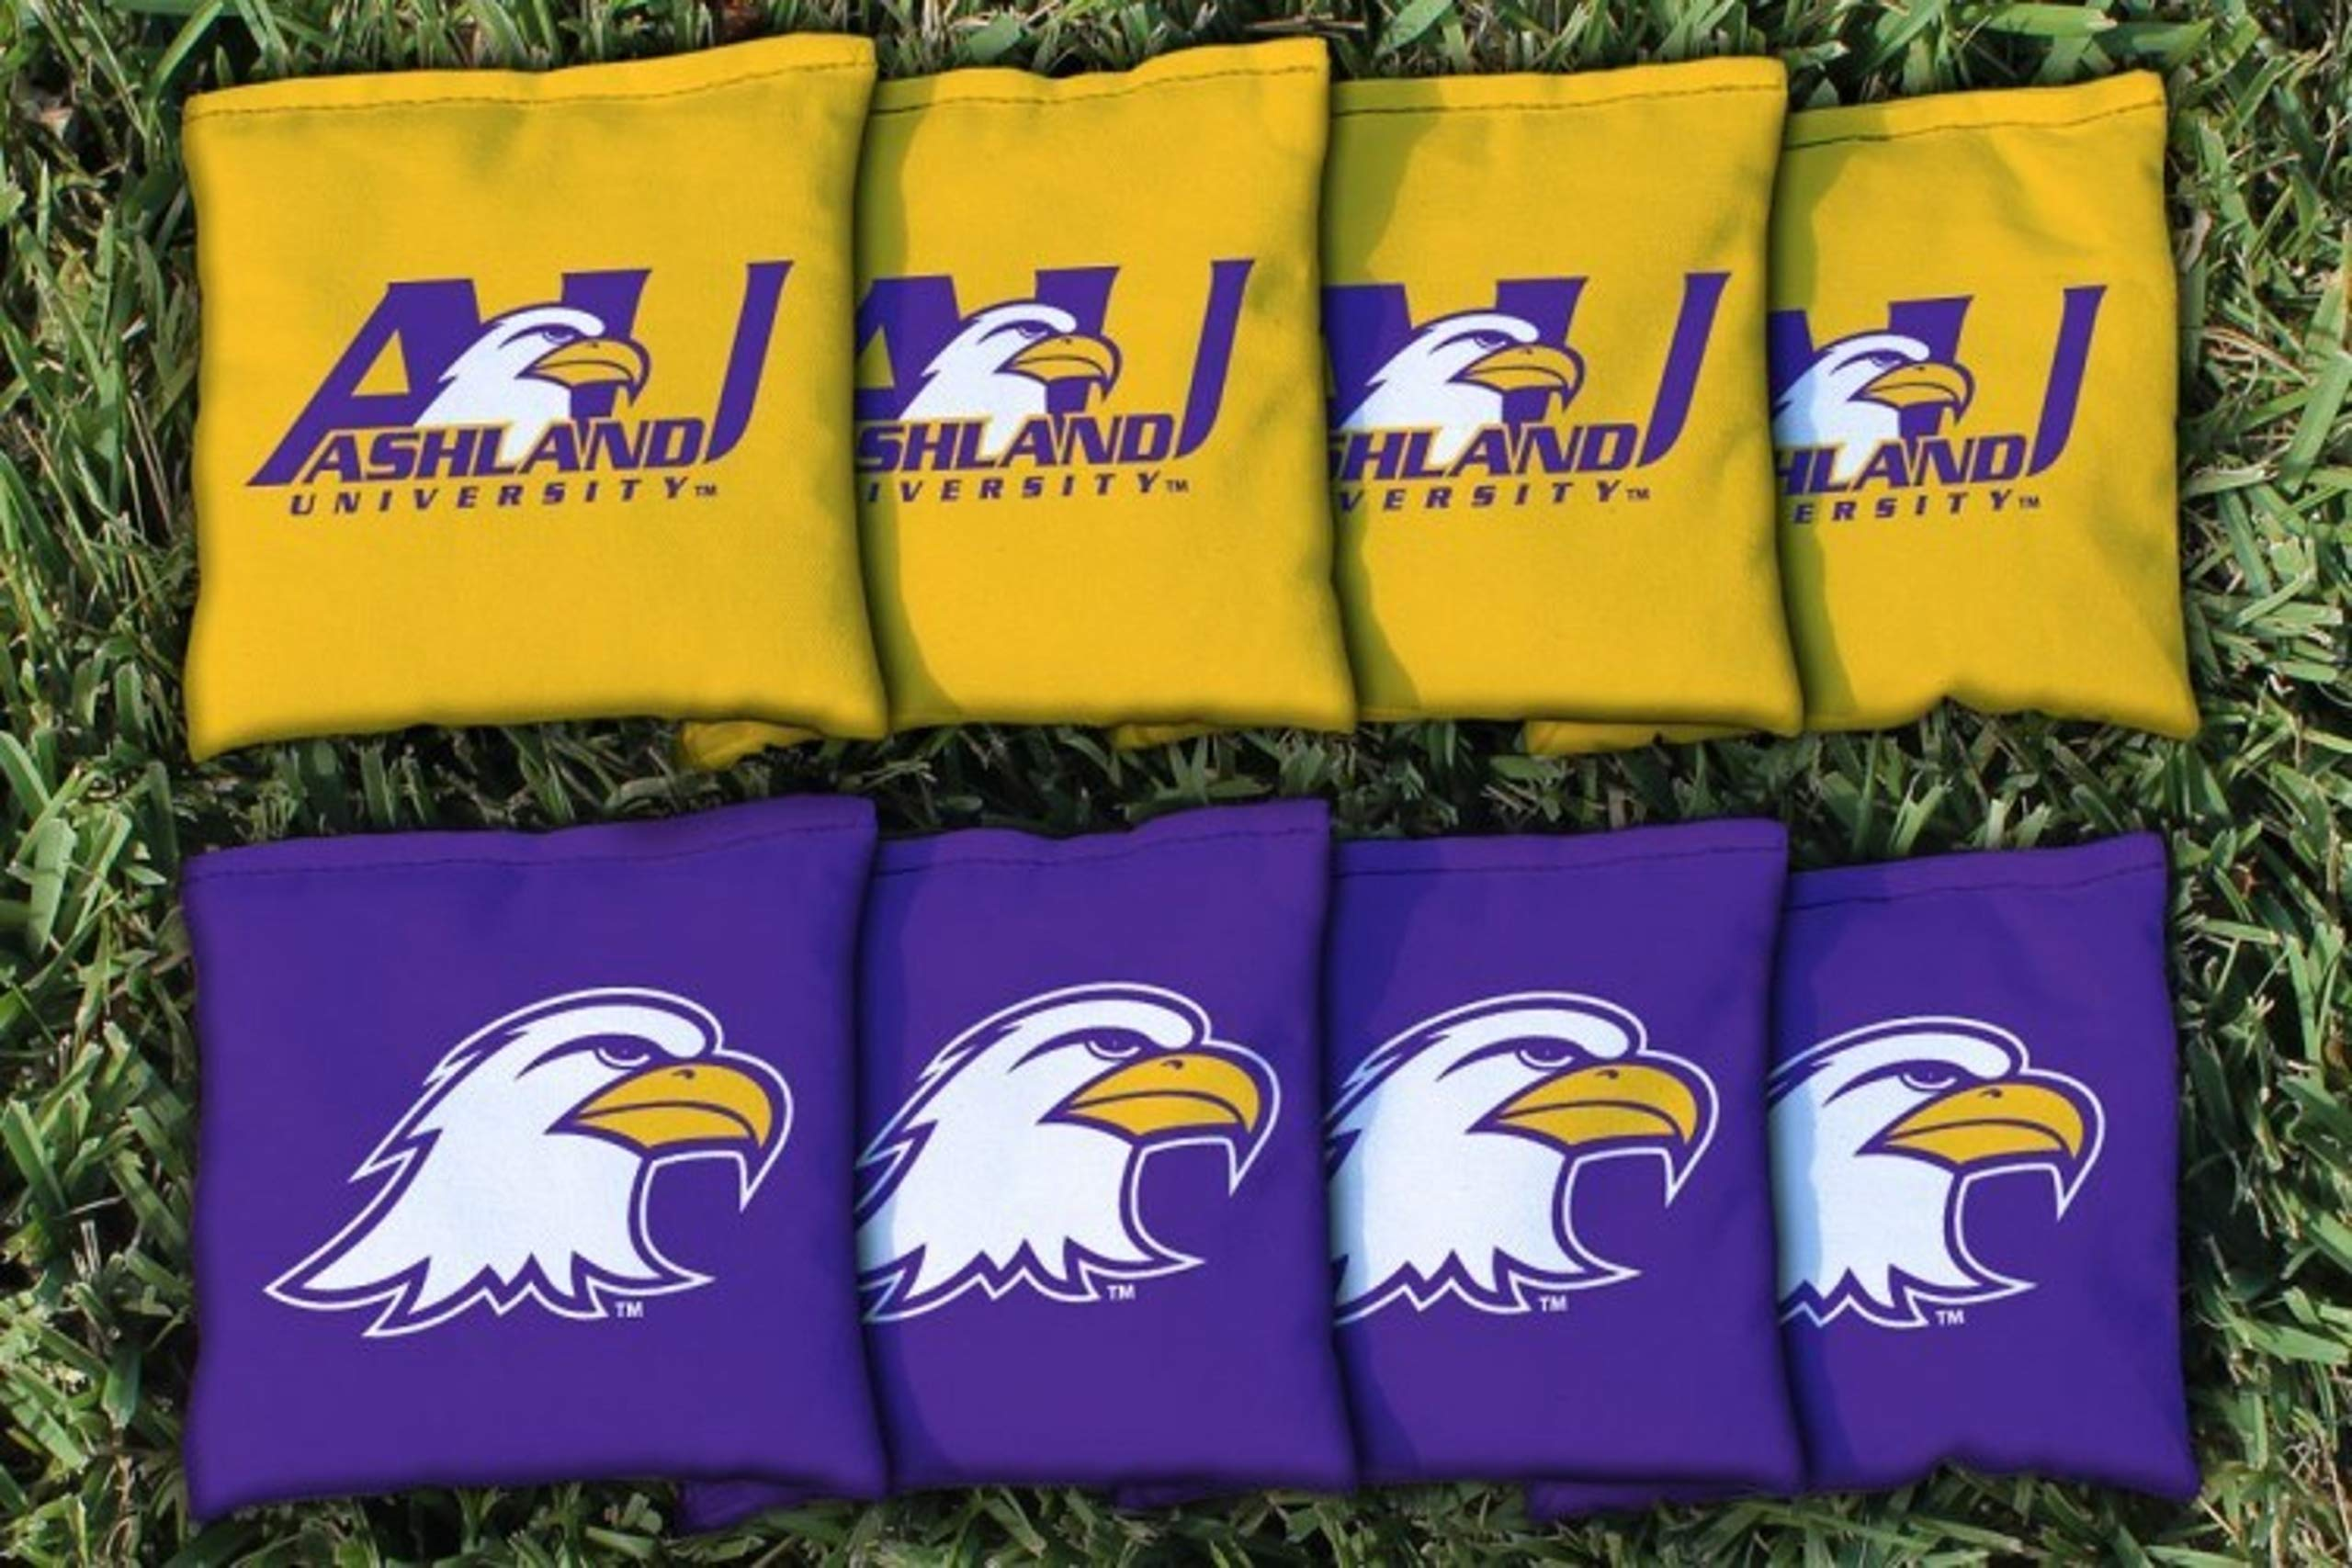 Victory Tailgate NCAA Collegiate Regulation Cornhole Game Bag Set (8 Bags Included, Corn-Filled) - Ashland Eagles by Victory Tailgate